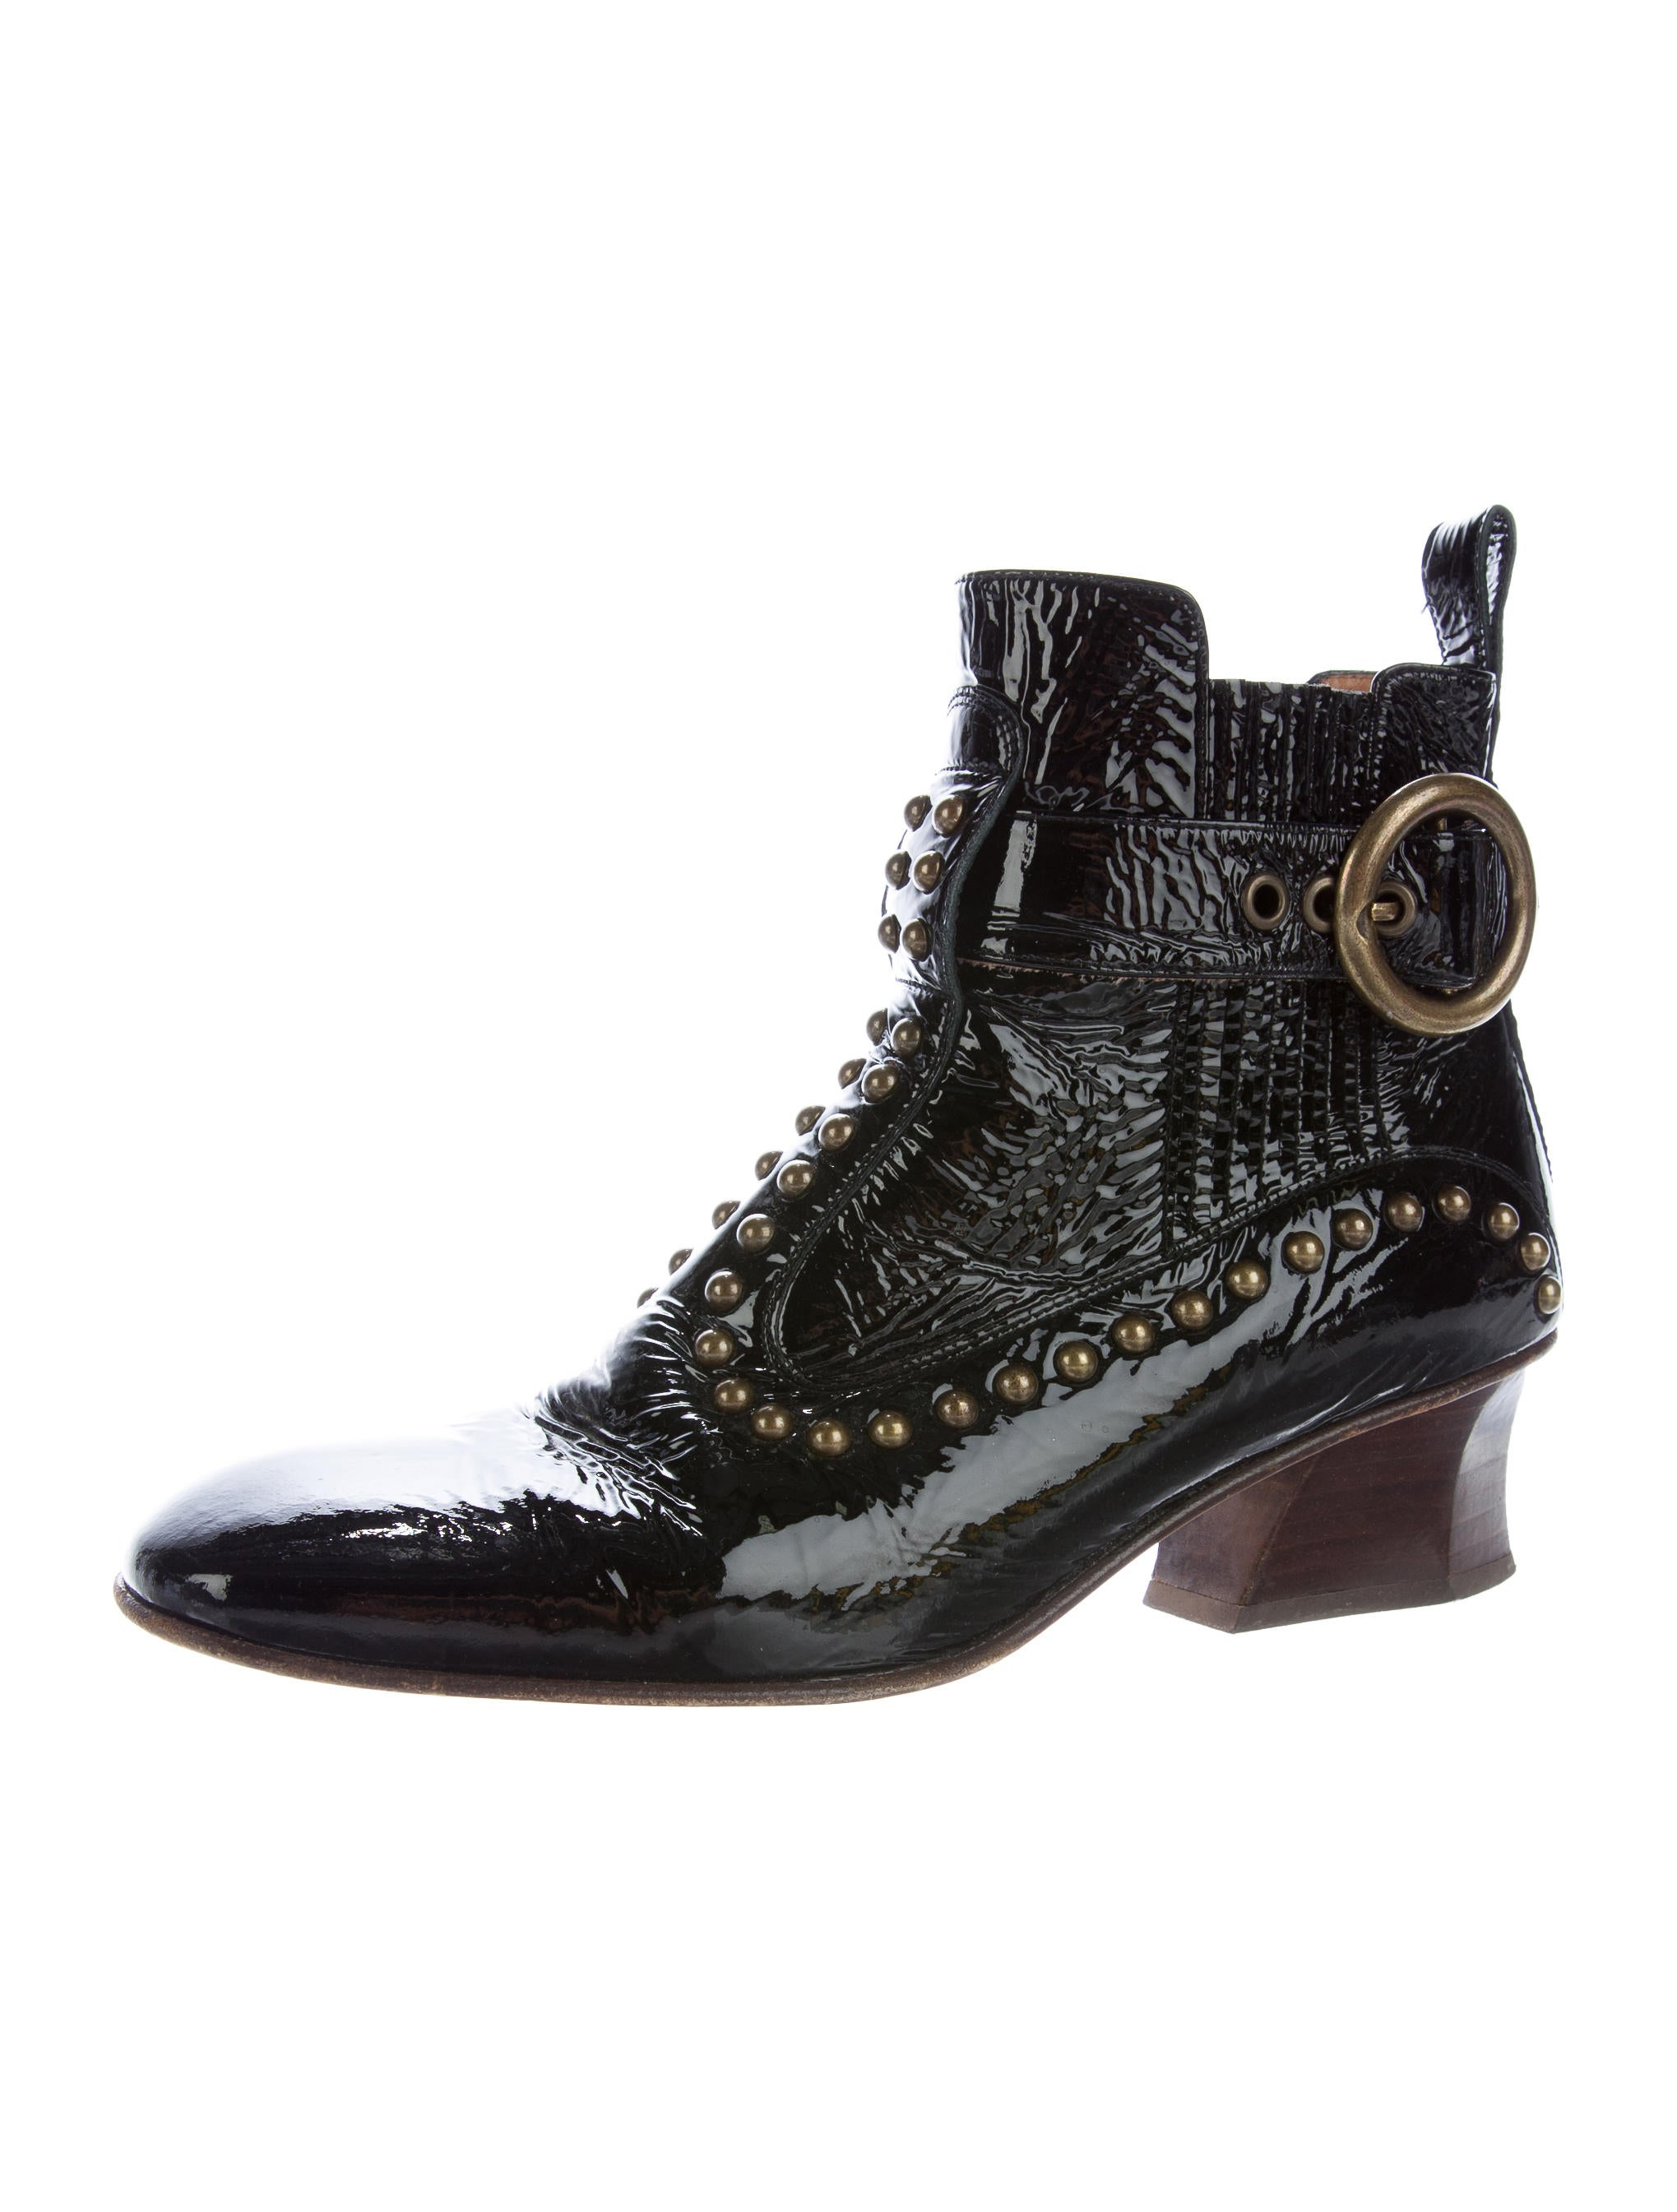 coach studded patent leather ankle boots shoes